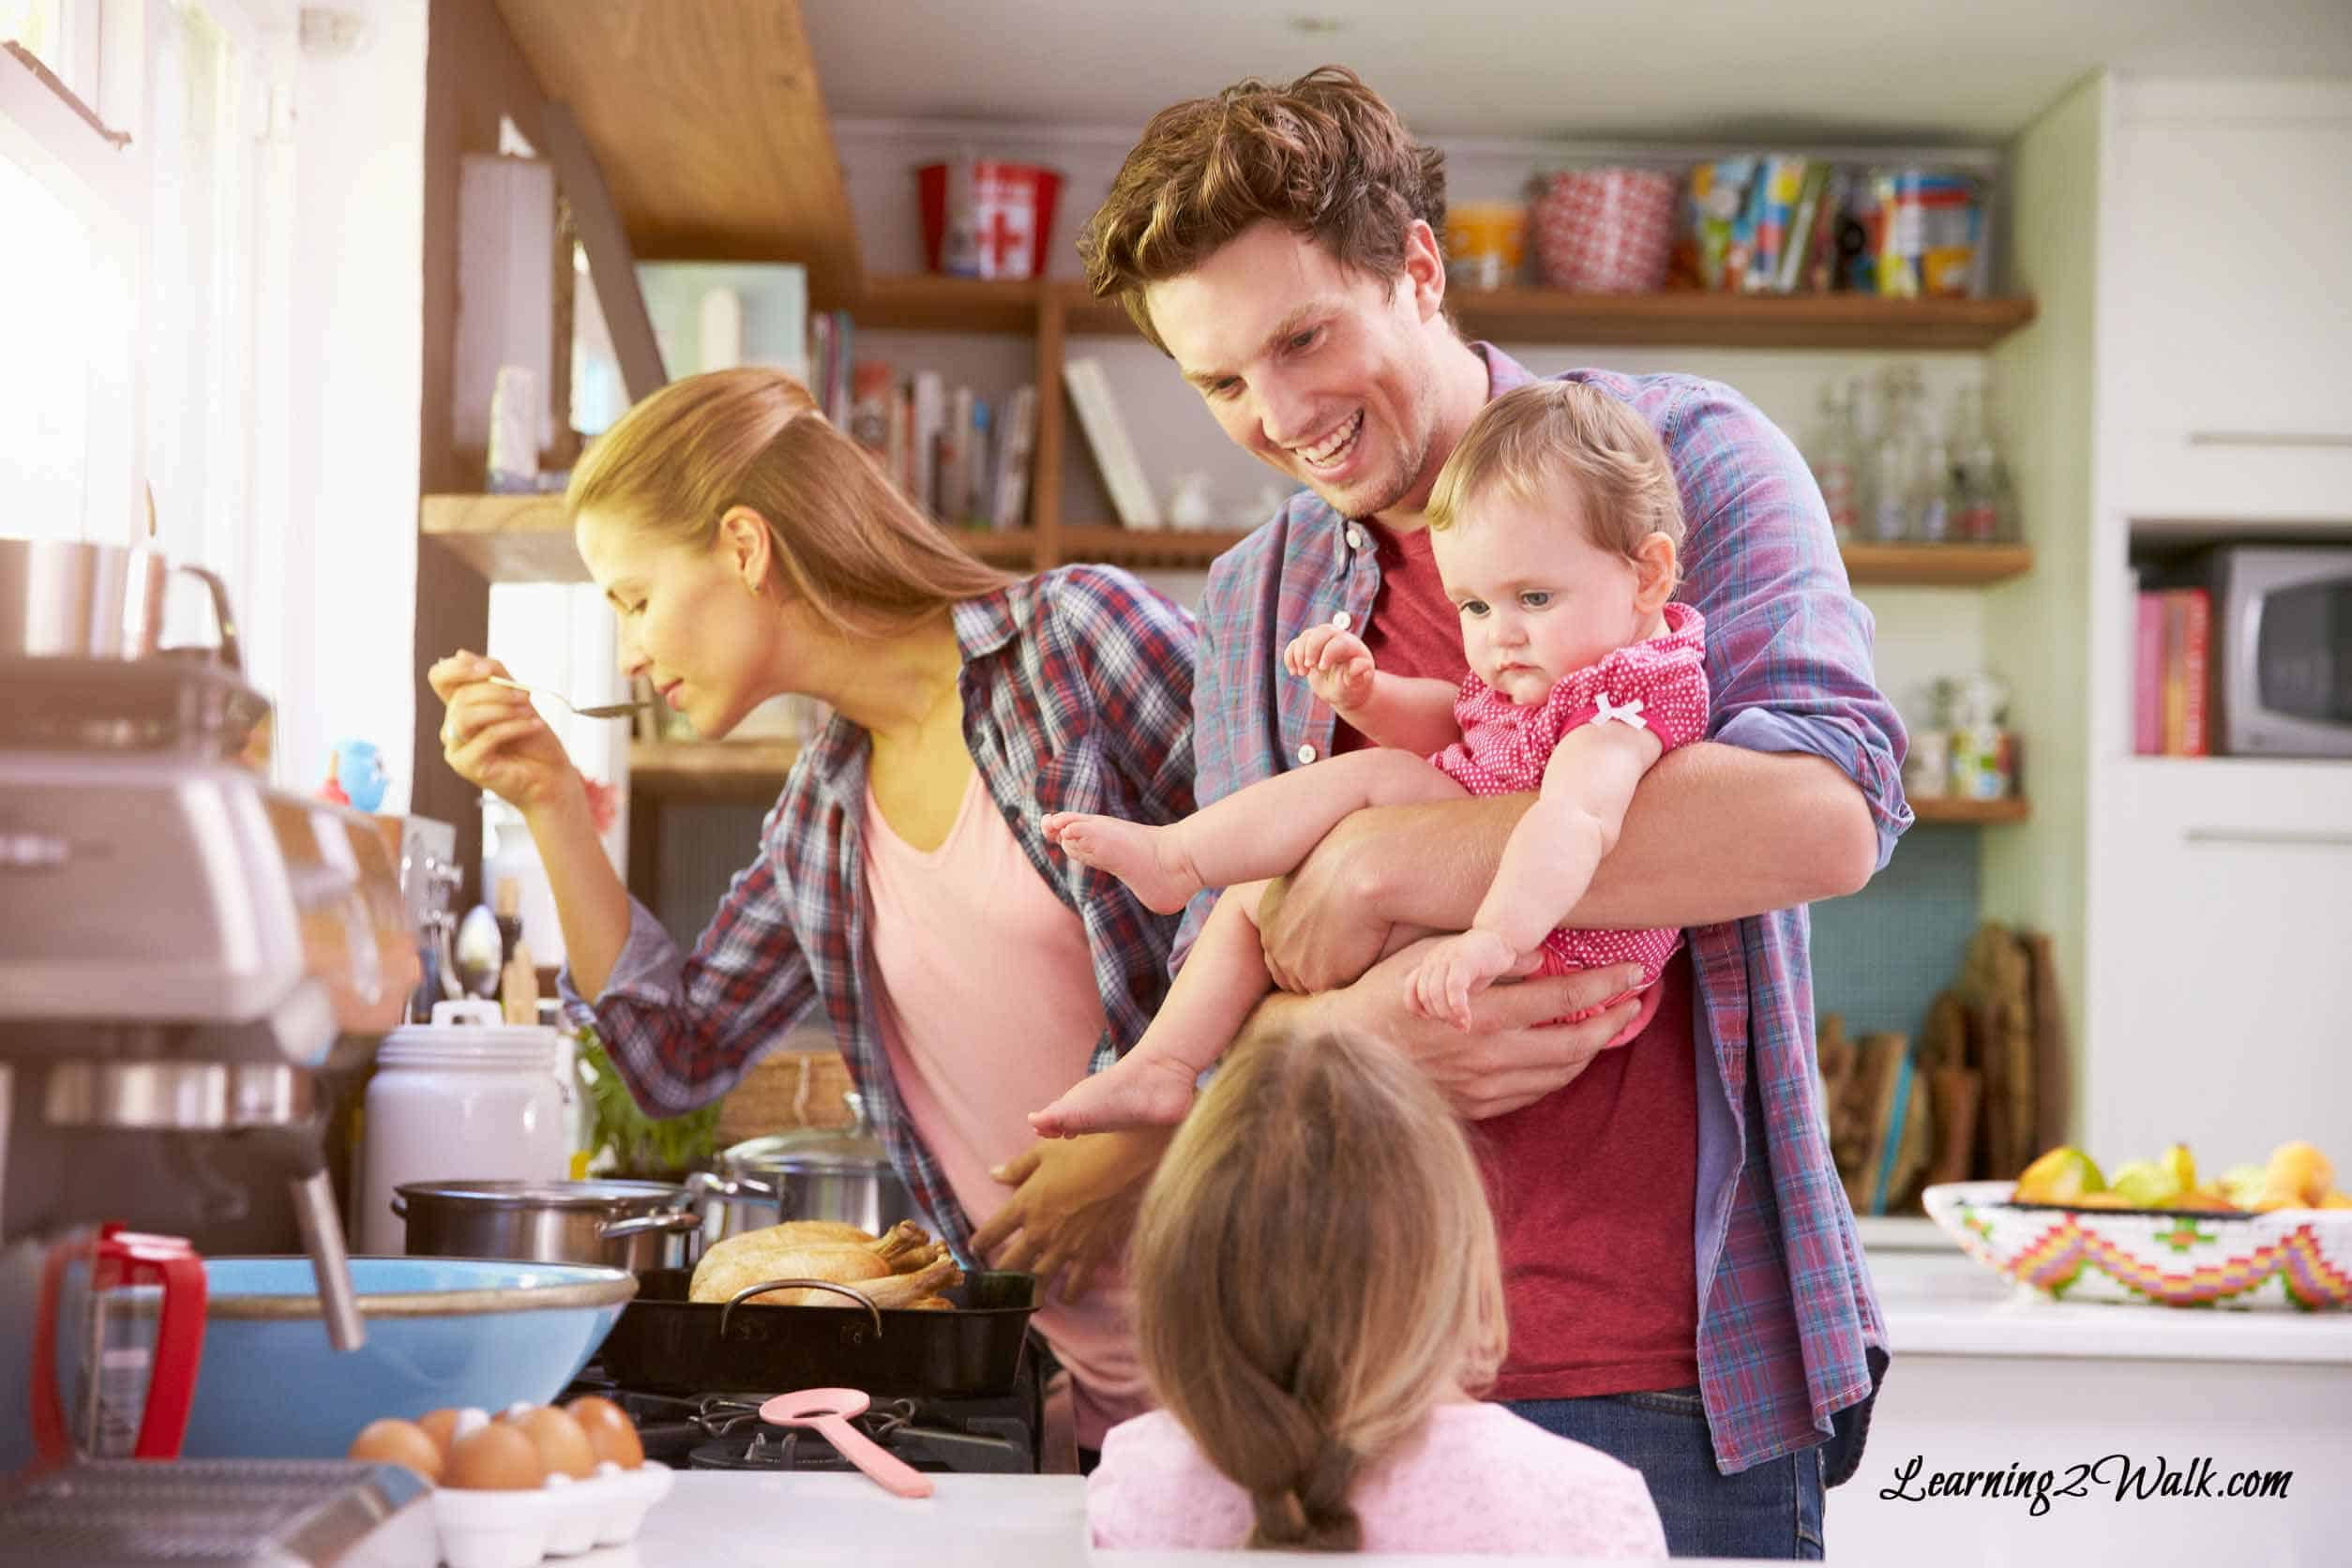 Wondering what to do with your kids on Valentine's Day? Why not include them? Yup, try any one of these Valentine's Day With Kids Activities. Maybe even cook together as a family?